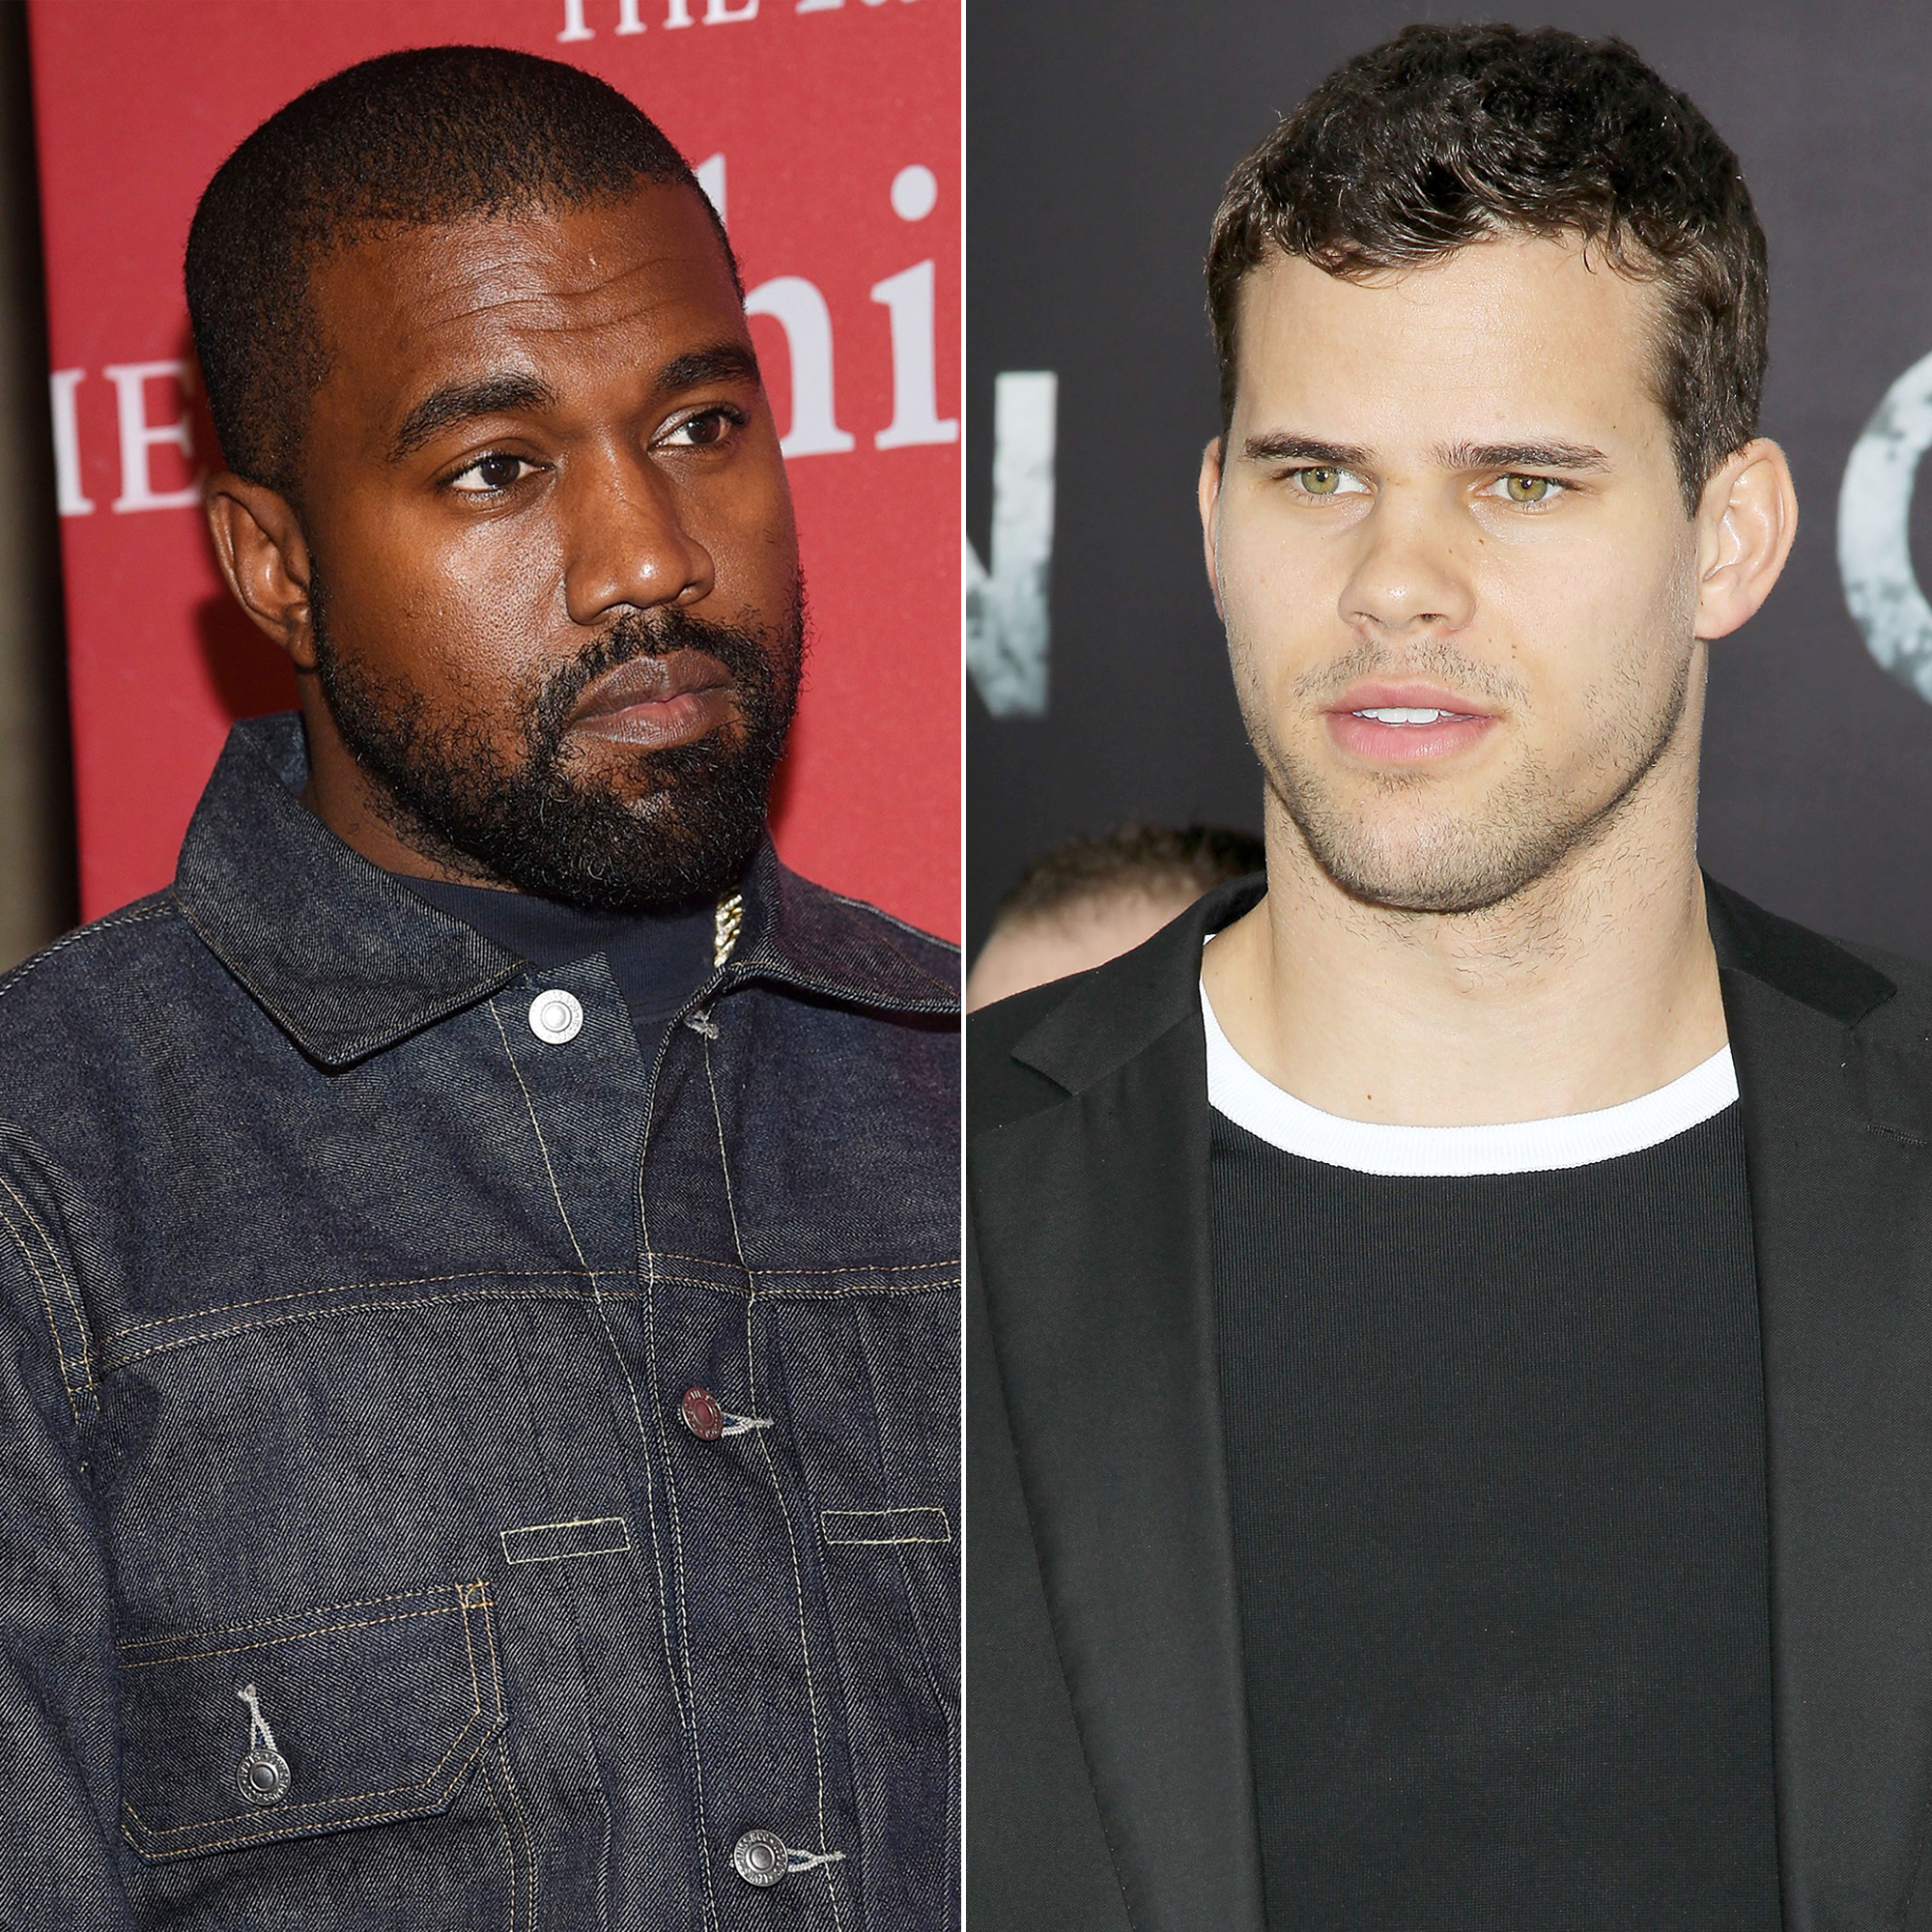 Kanye West Takes a Jab at Kris Humphries